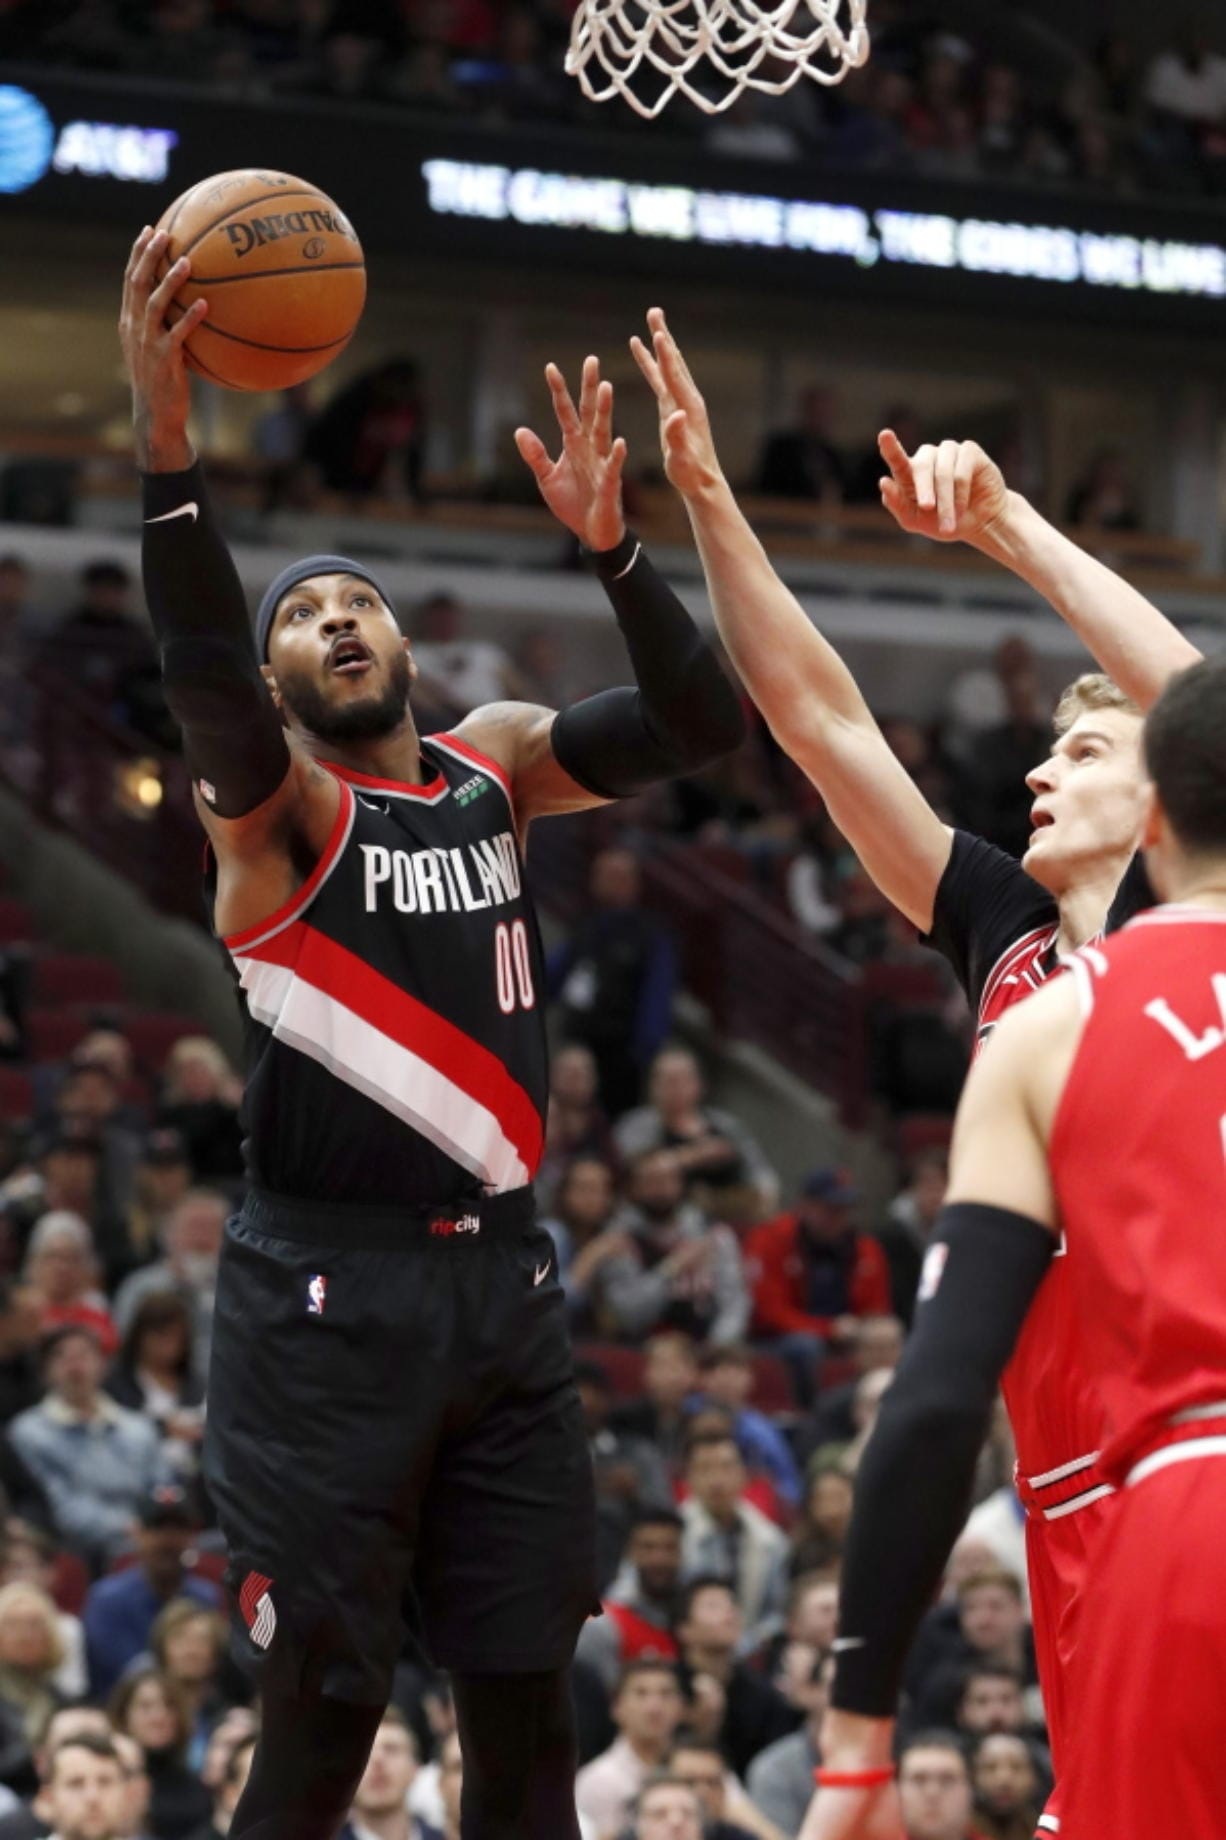 Portland Trail Blazers' Carmelo Anthony scores past Chicago Bulls' Lauri Markkanen during the first half of an NBA basketball game Monday, Nov. 25, 2019, in Chicago.